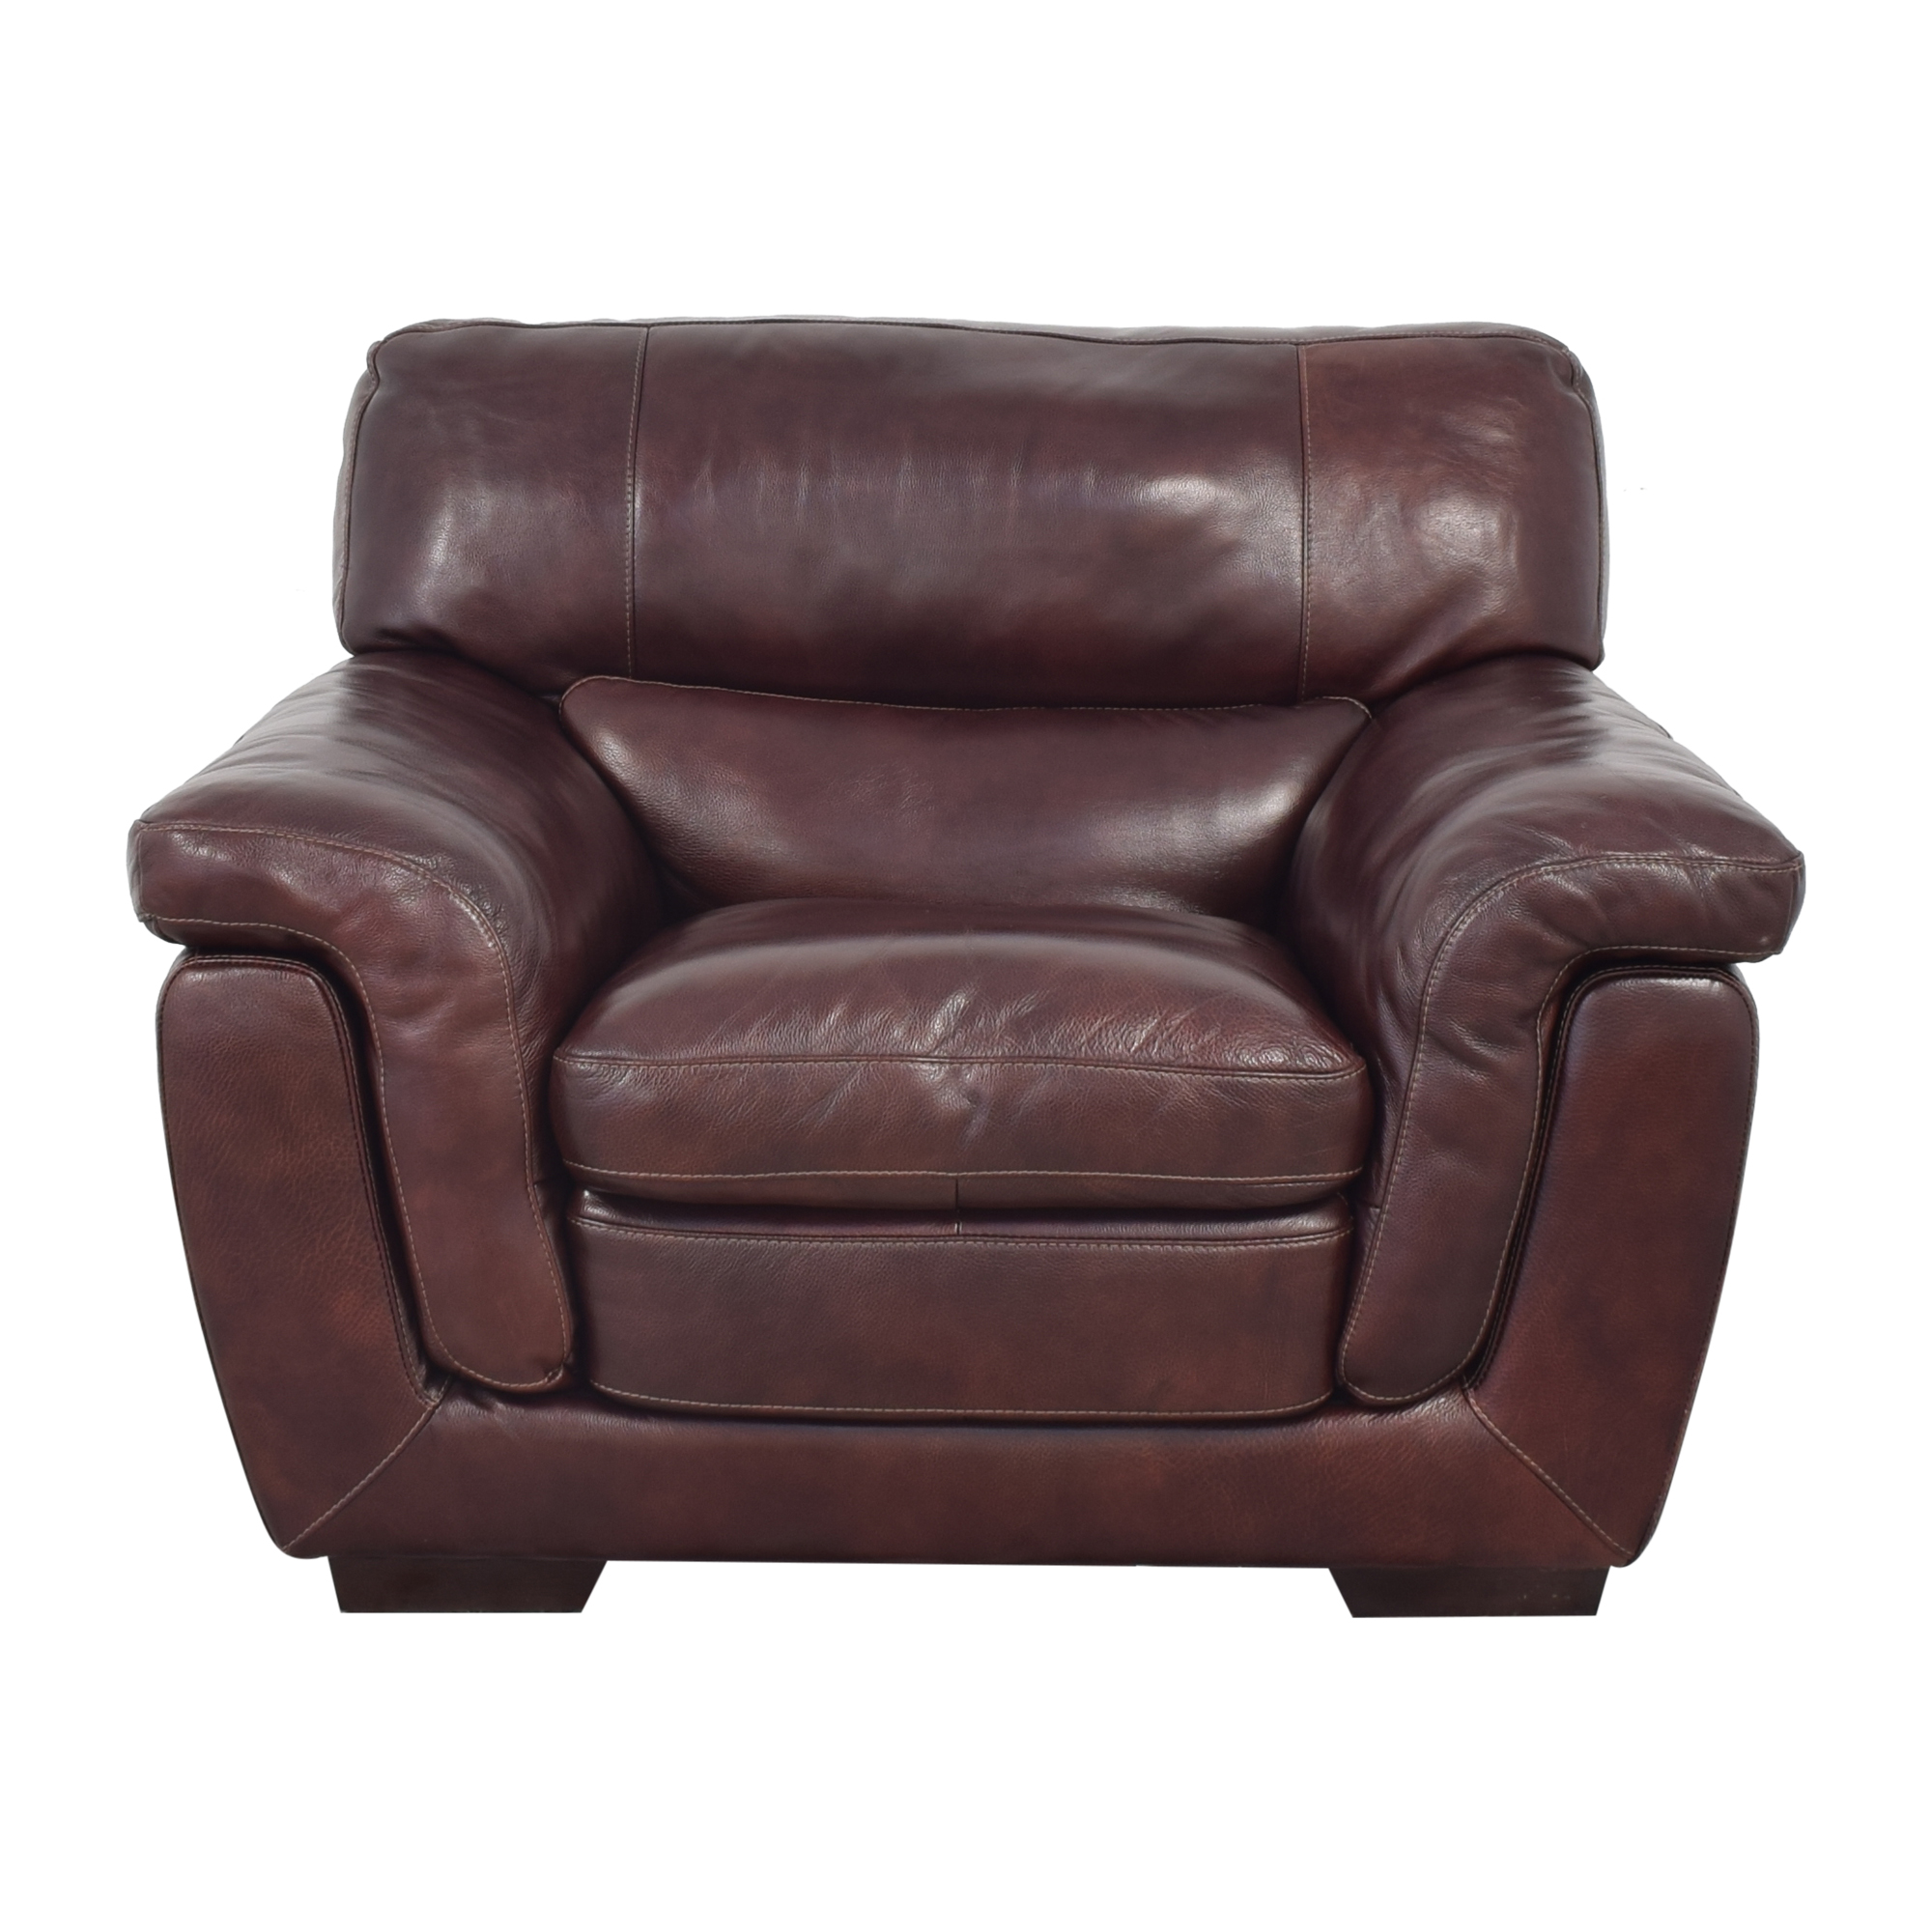 buy Raymour & Flanigan Raymour & Flanigan Lounge Chair and Ottoman online